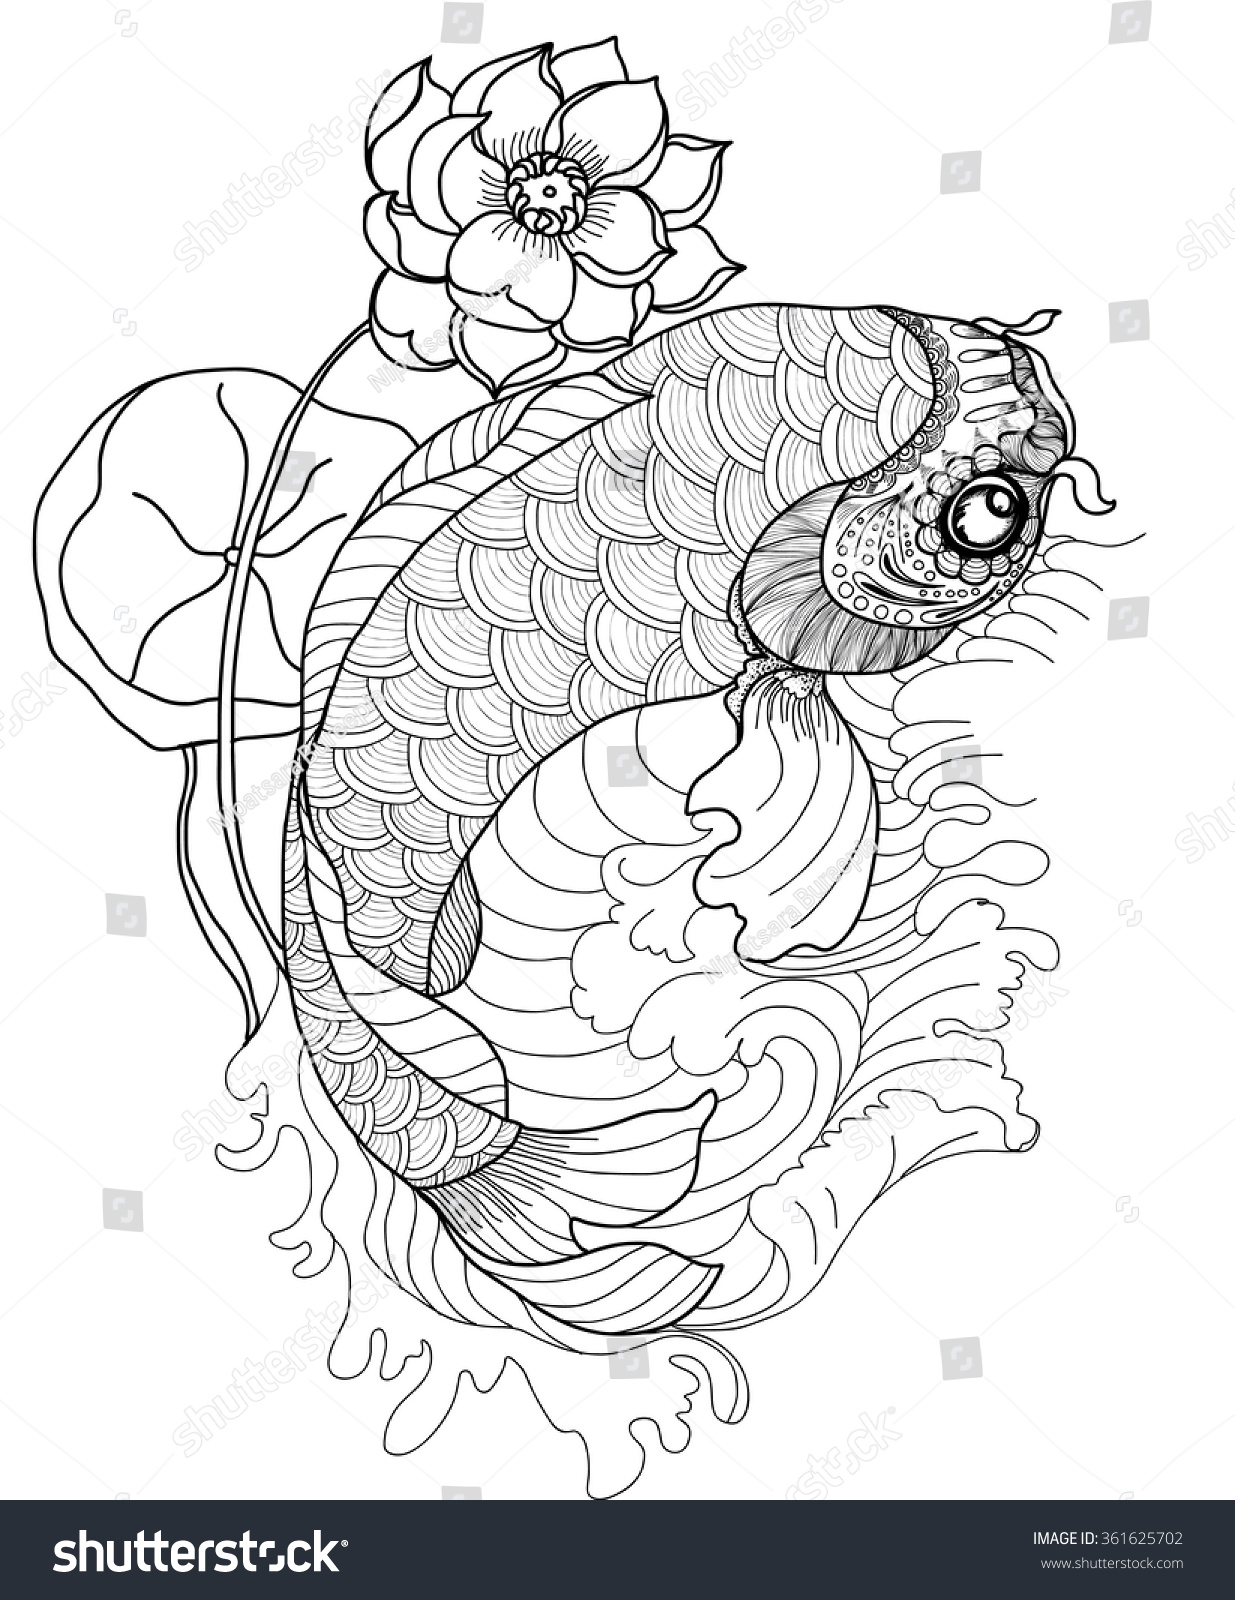 Hand Drawn Koi Fish In Circlegold Japanese Carp Line Drawing Coloring Book Vector Image